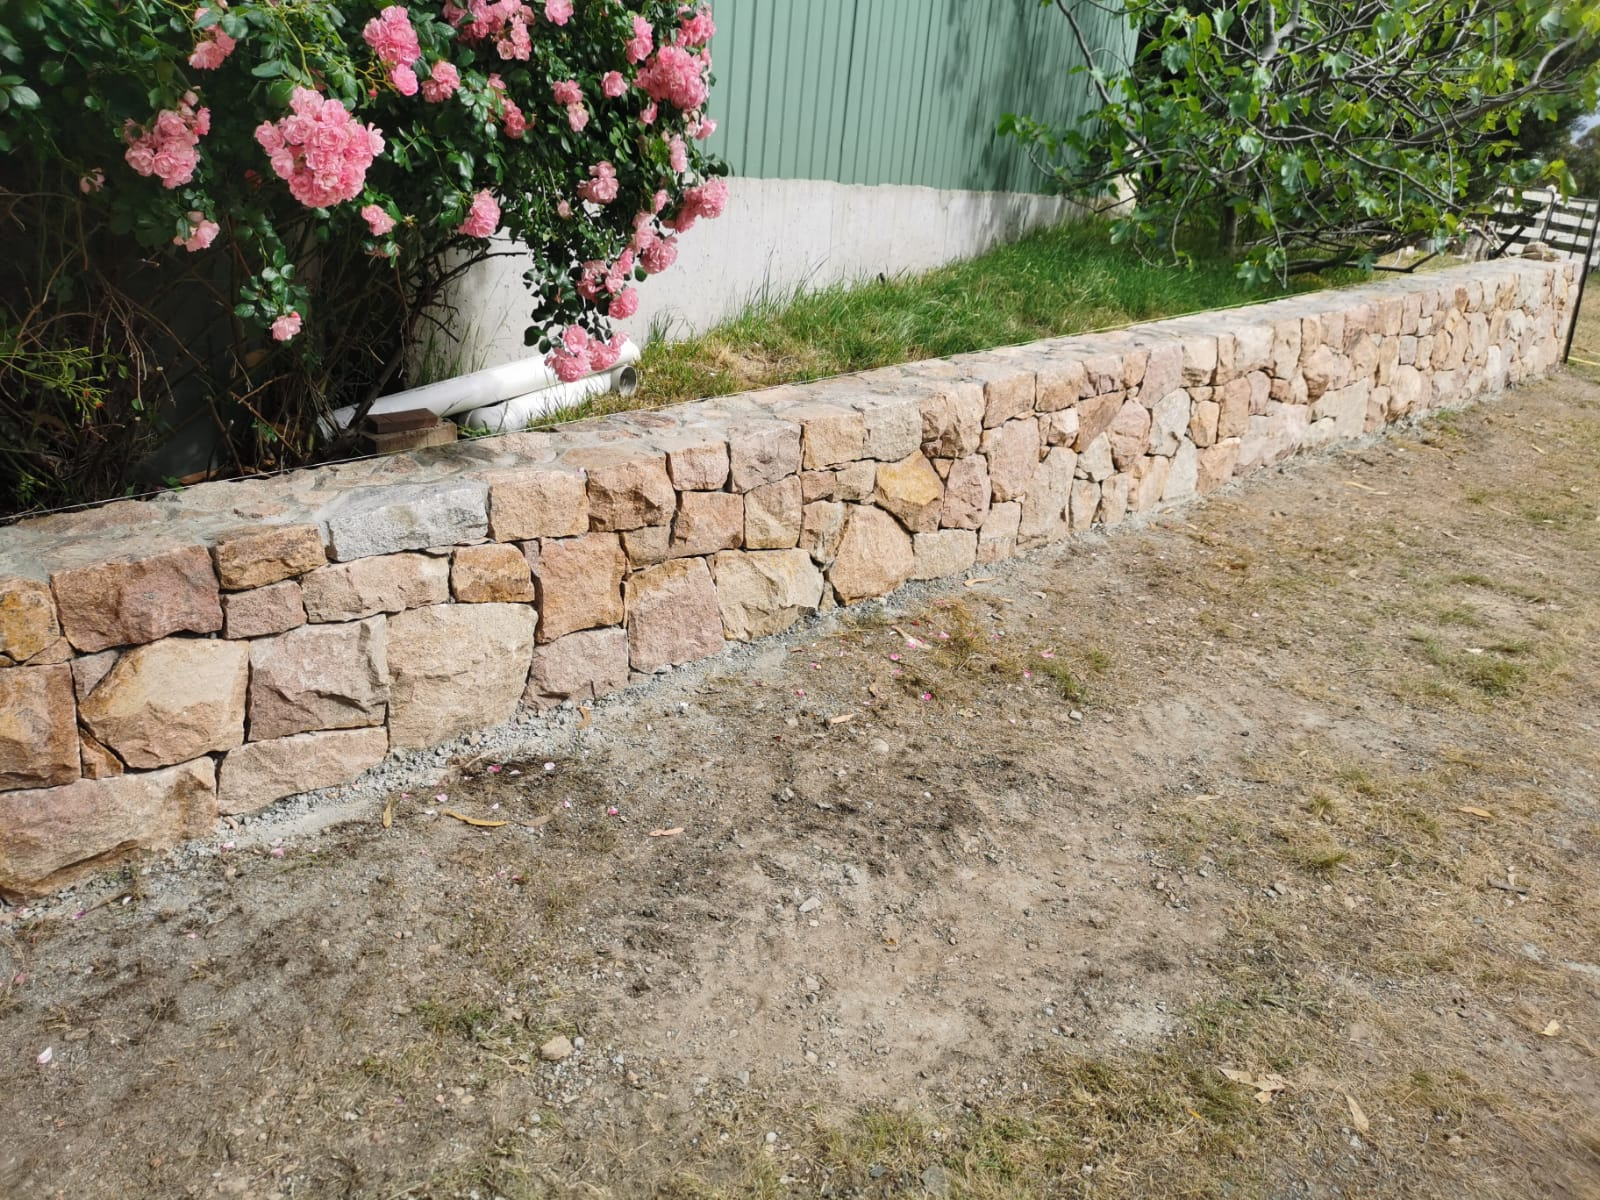 8d77cd88-2a7c-42ee-b66e-bf2f0943040c Melbourne Stonemasons | Dry Stone Walling | Call 0411 73 76 77